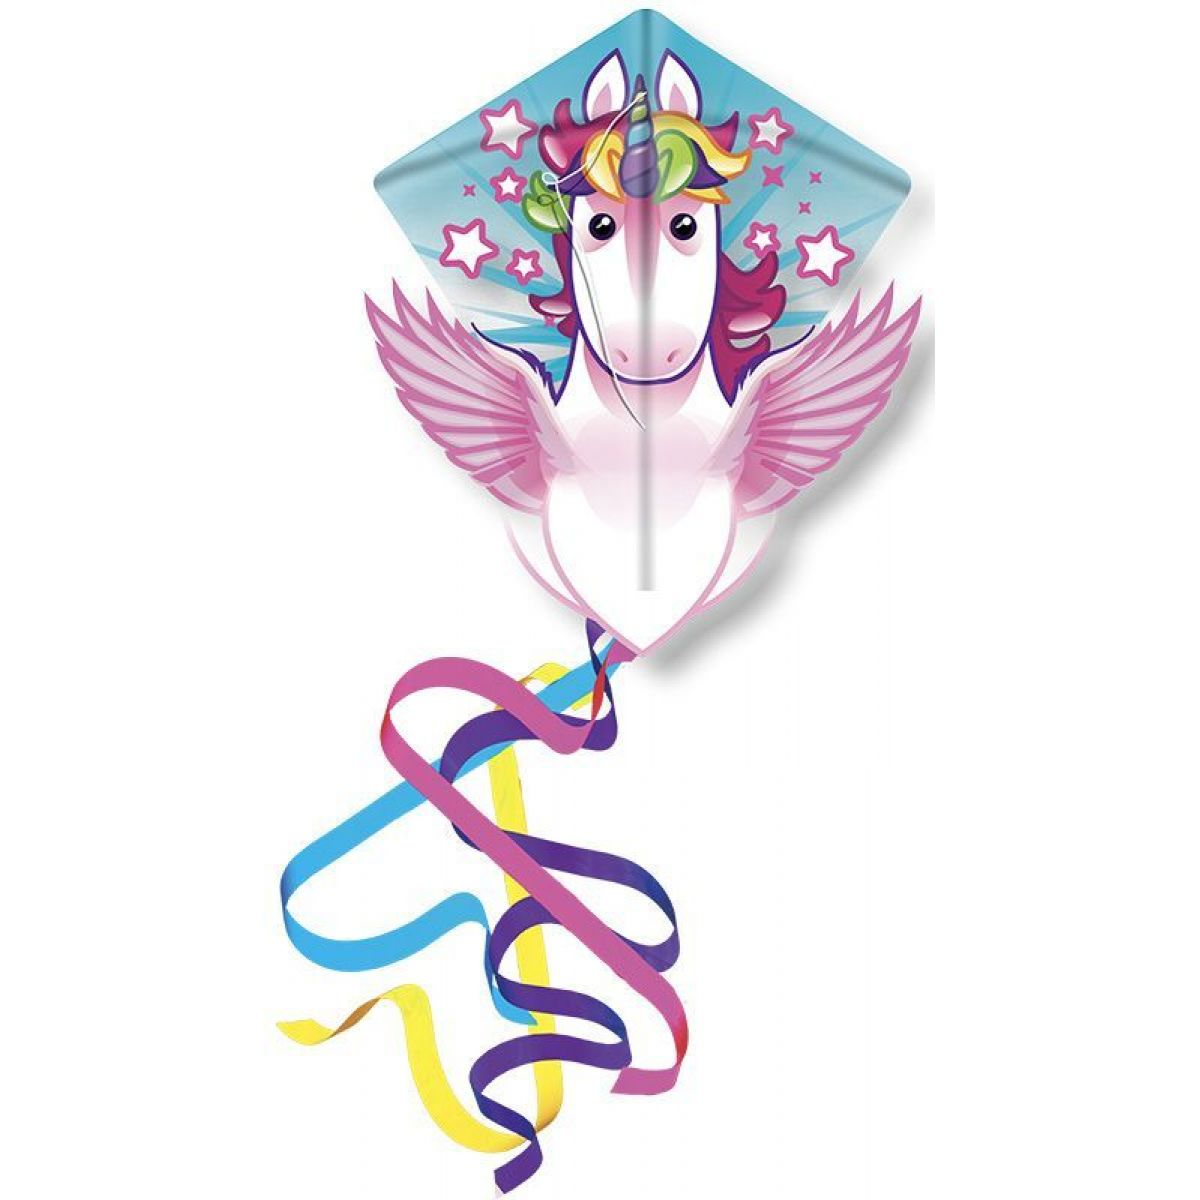 Eolo Drak Pop Up Unicorn 57 x 55 cm